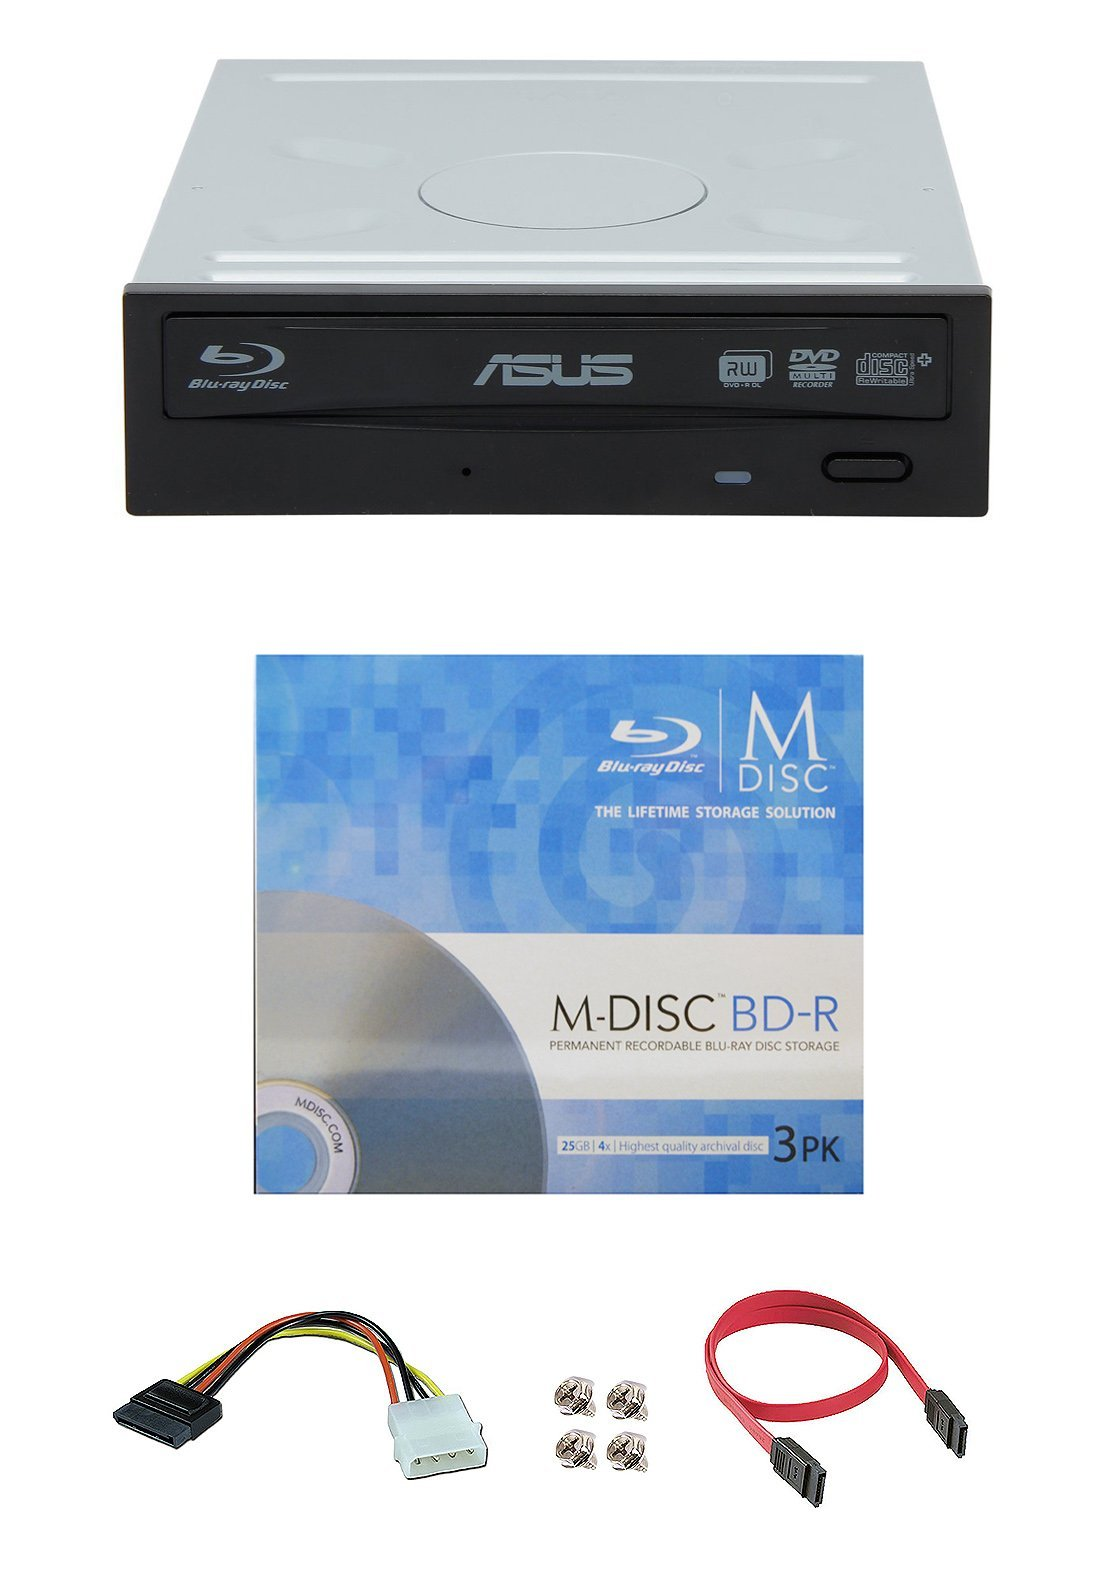 Asus 16x BW-16D1HT Internal Blu-ray Burner Drive Bundle with 3 Pack M-DISC BD and Cable Accessories (Supports BDXL and M-DISC, Retail Box)